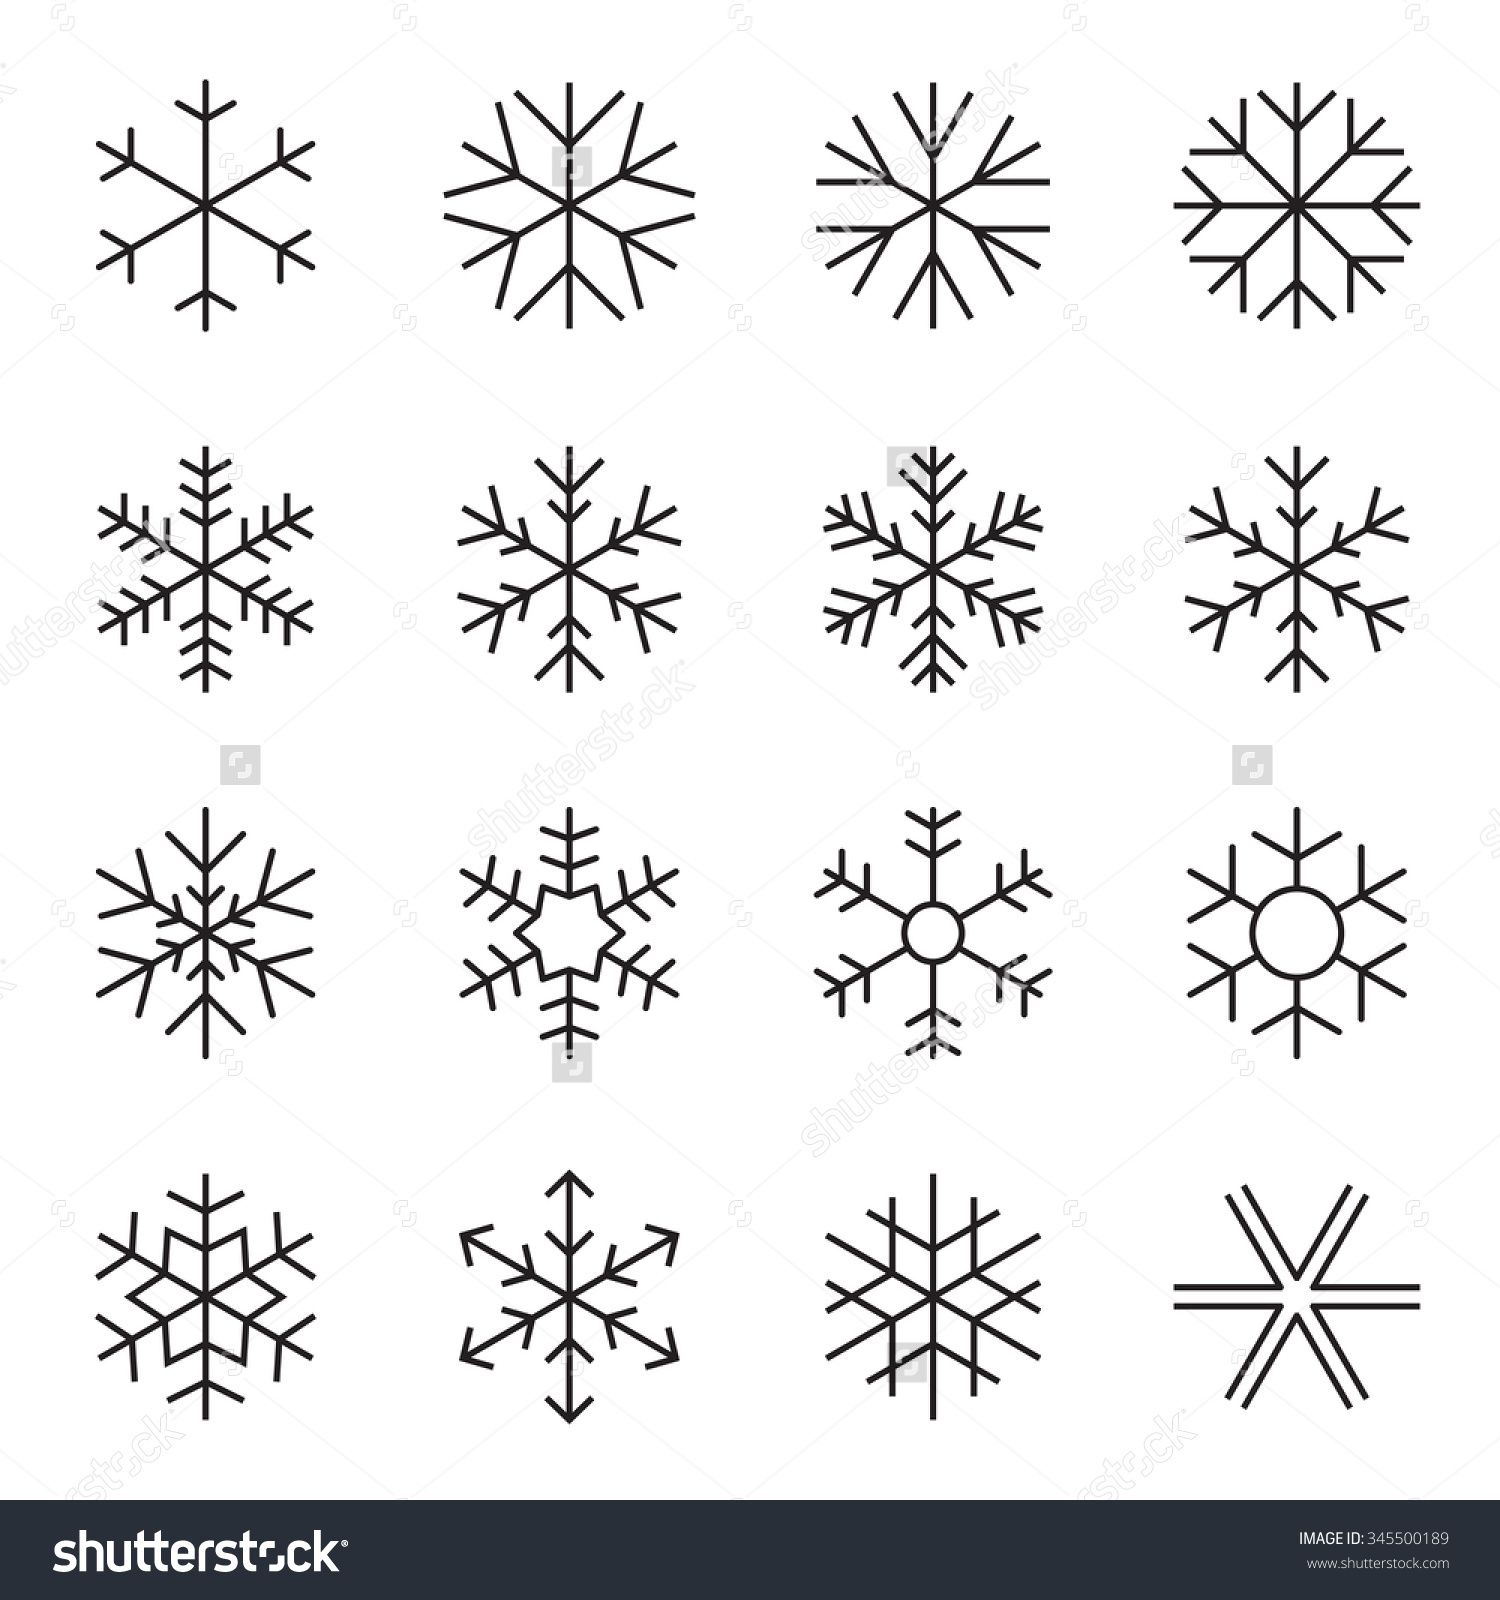 Simple Snowflake Line Art : Stock vector thin line simple snowflake icons symbols of